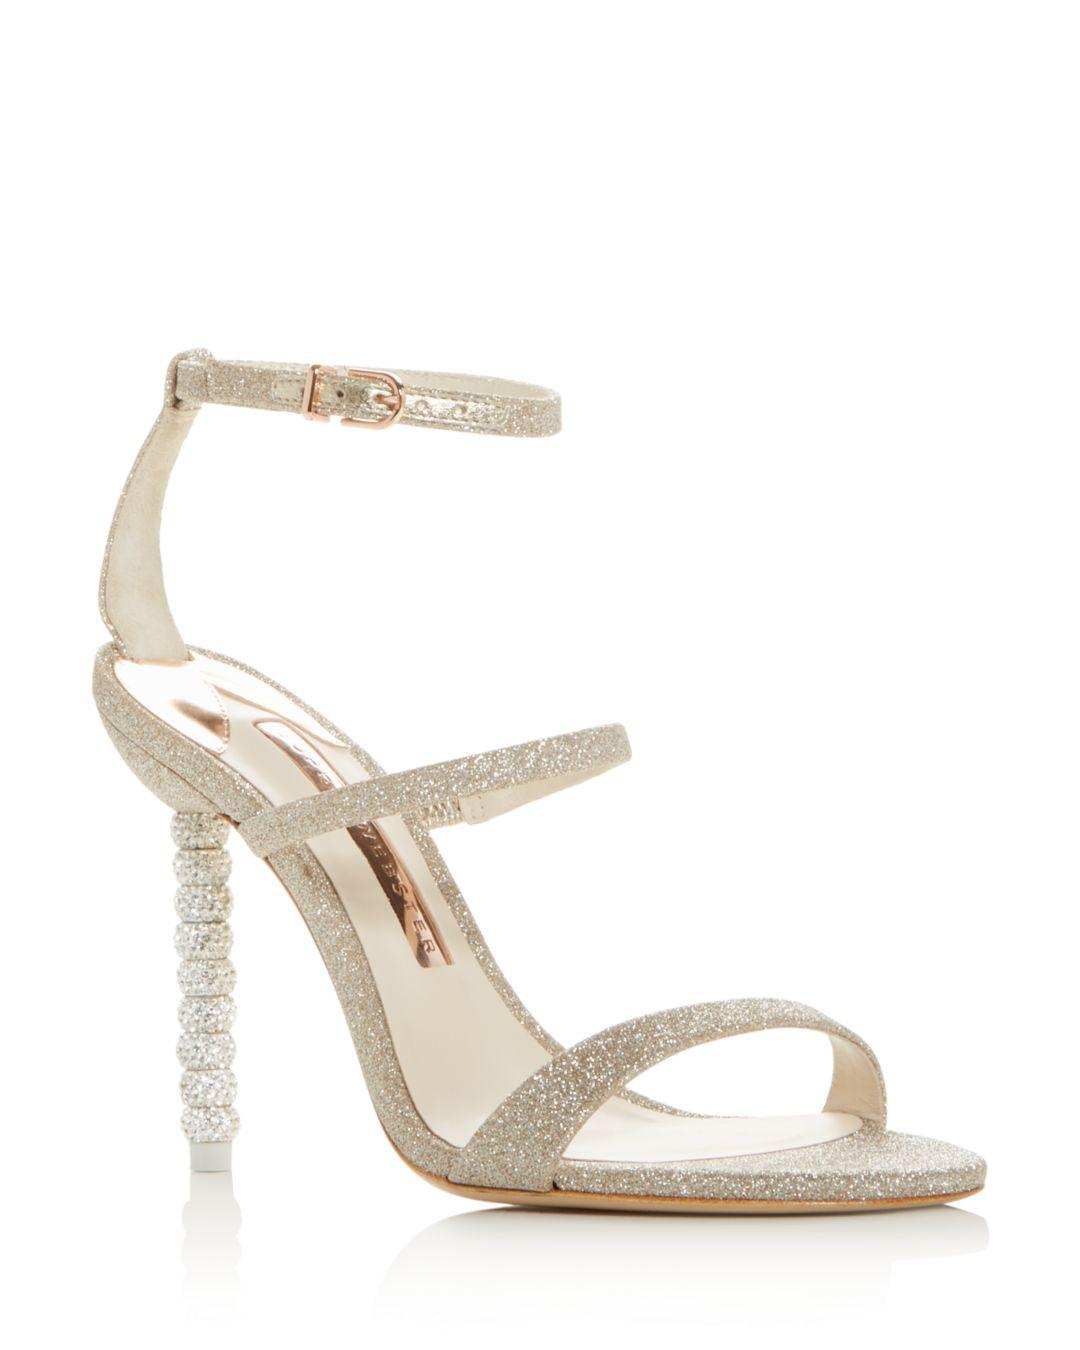 2be426d22 sophia-webster-Champagne-Glitter-Womens-Rosalind-Embellished-High-heel-Sandals.jpeg